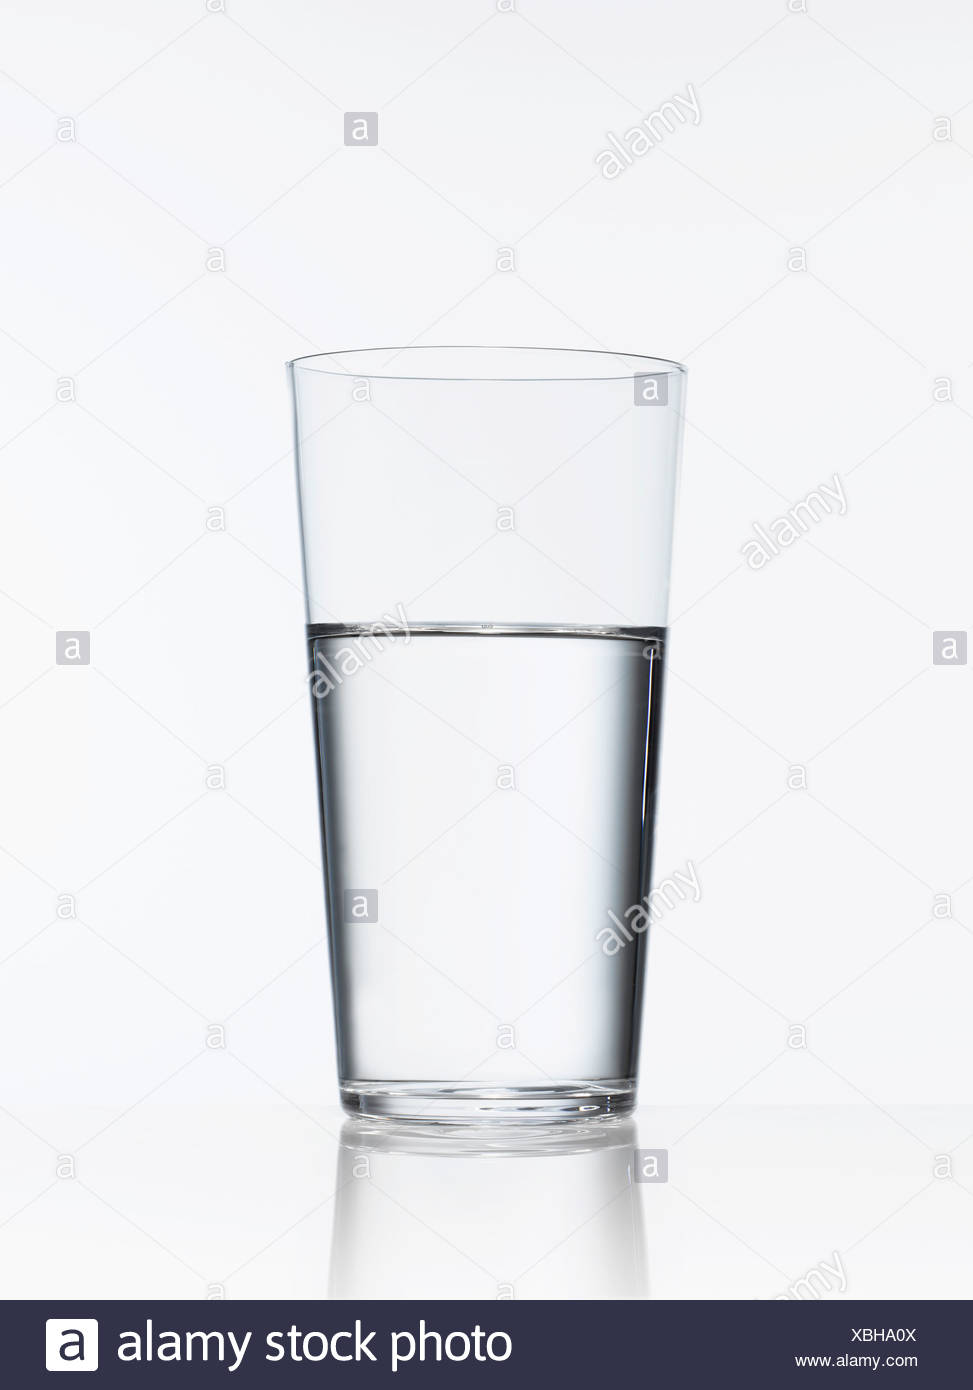 Studio shot of glass of water - Stock Image